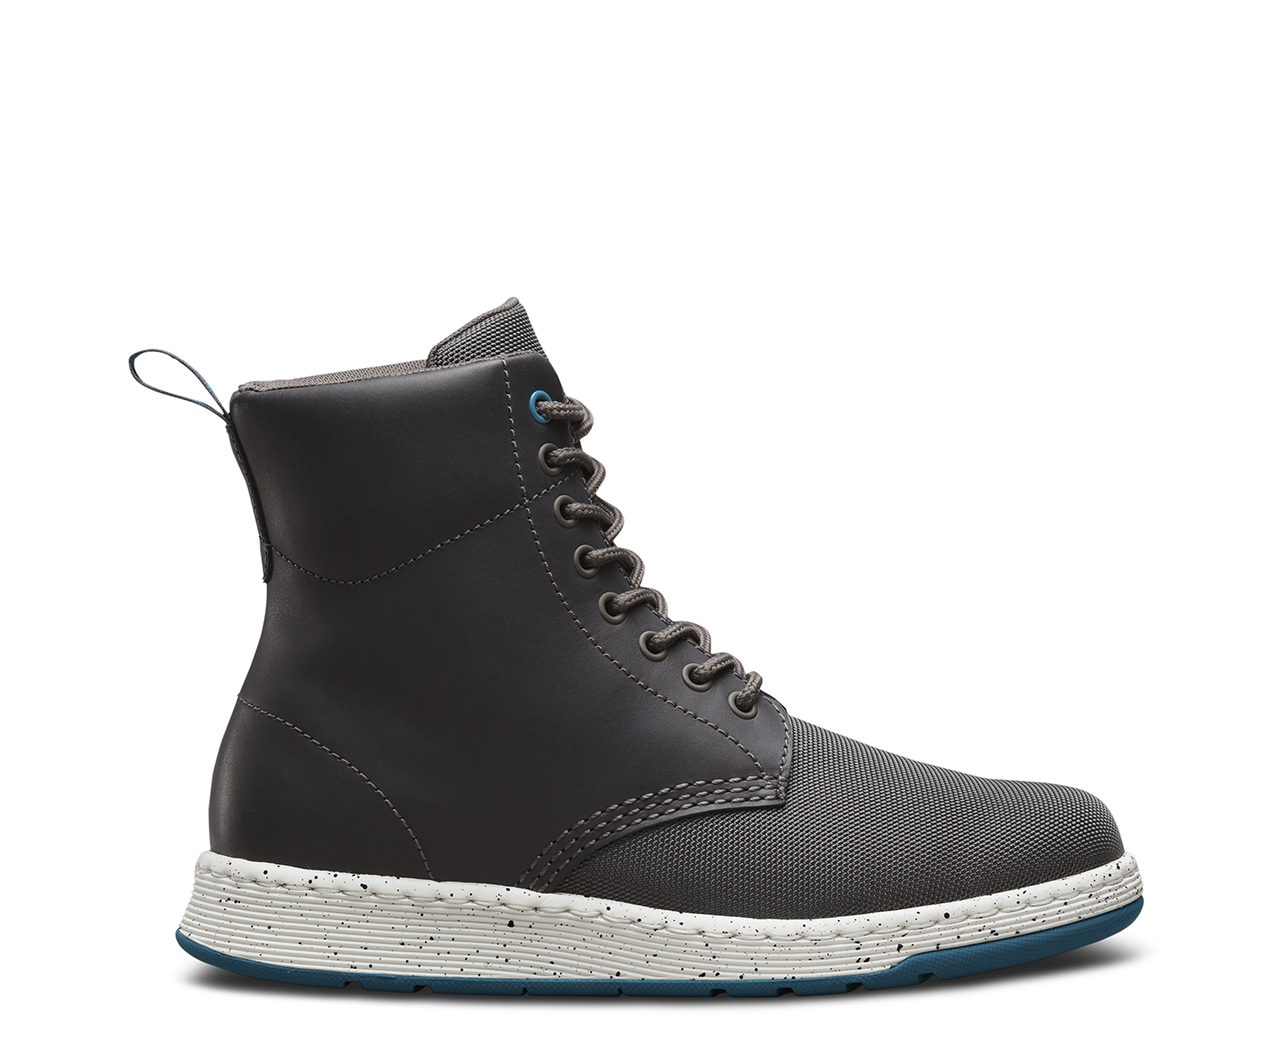 Mens Rigal Cdr Gunmetal Temperley+Cordura Boots Dr. Martens Lowest Price Sale Online Free Shipping Collections GdVatUOf